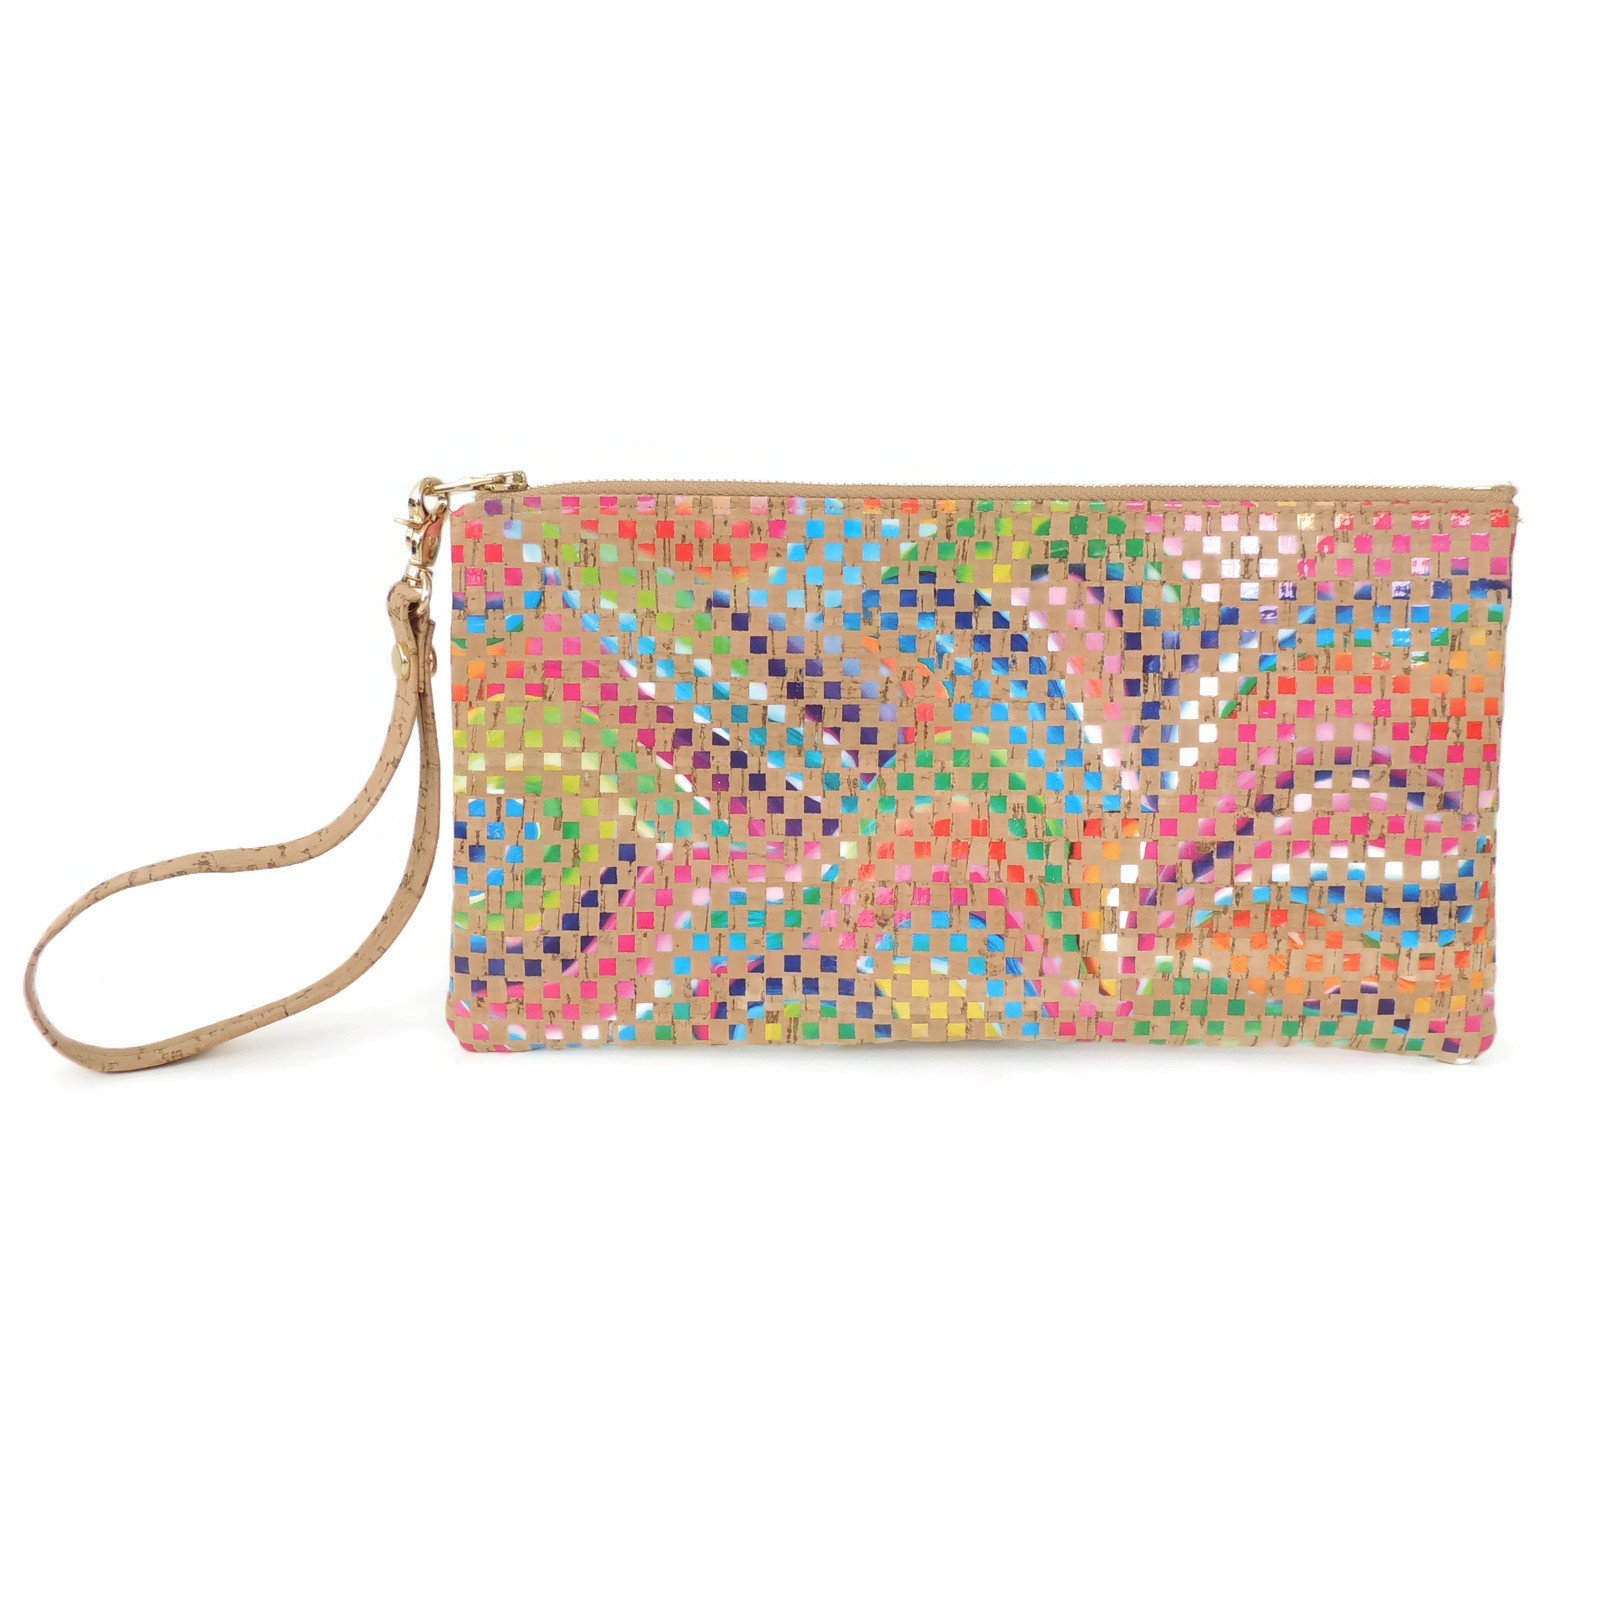 Vegan Wristlet Clutch Purse in Mosaic Cork Fabric by Spicer Bags